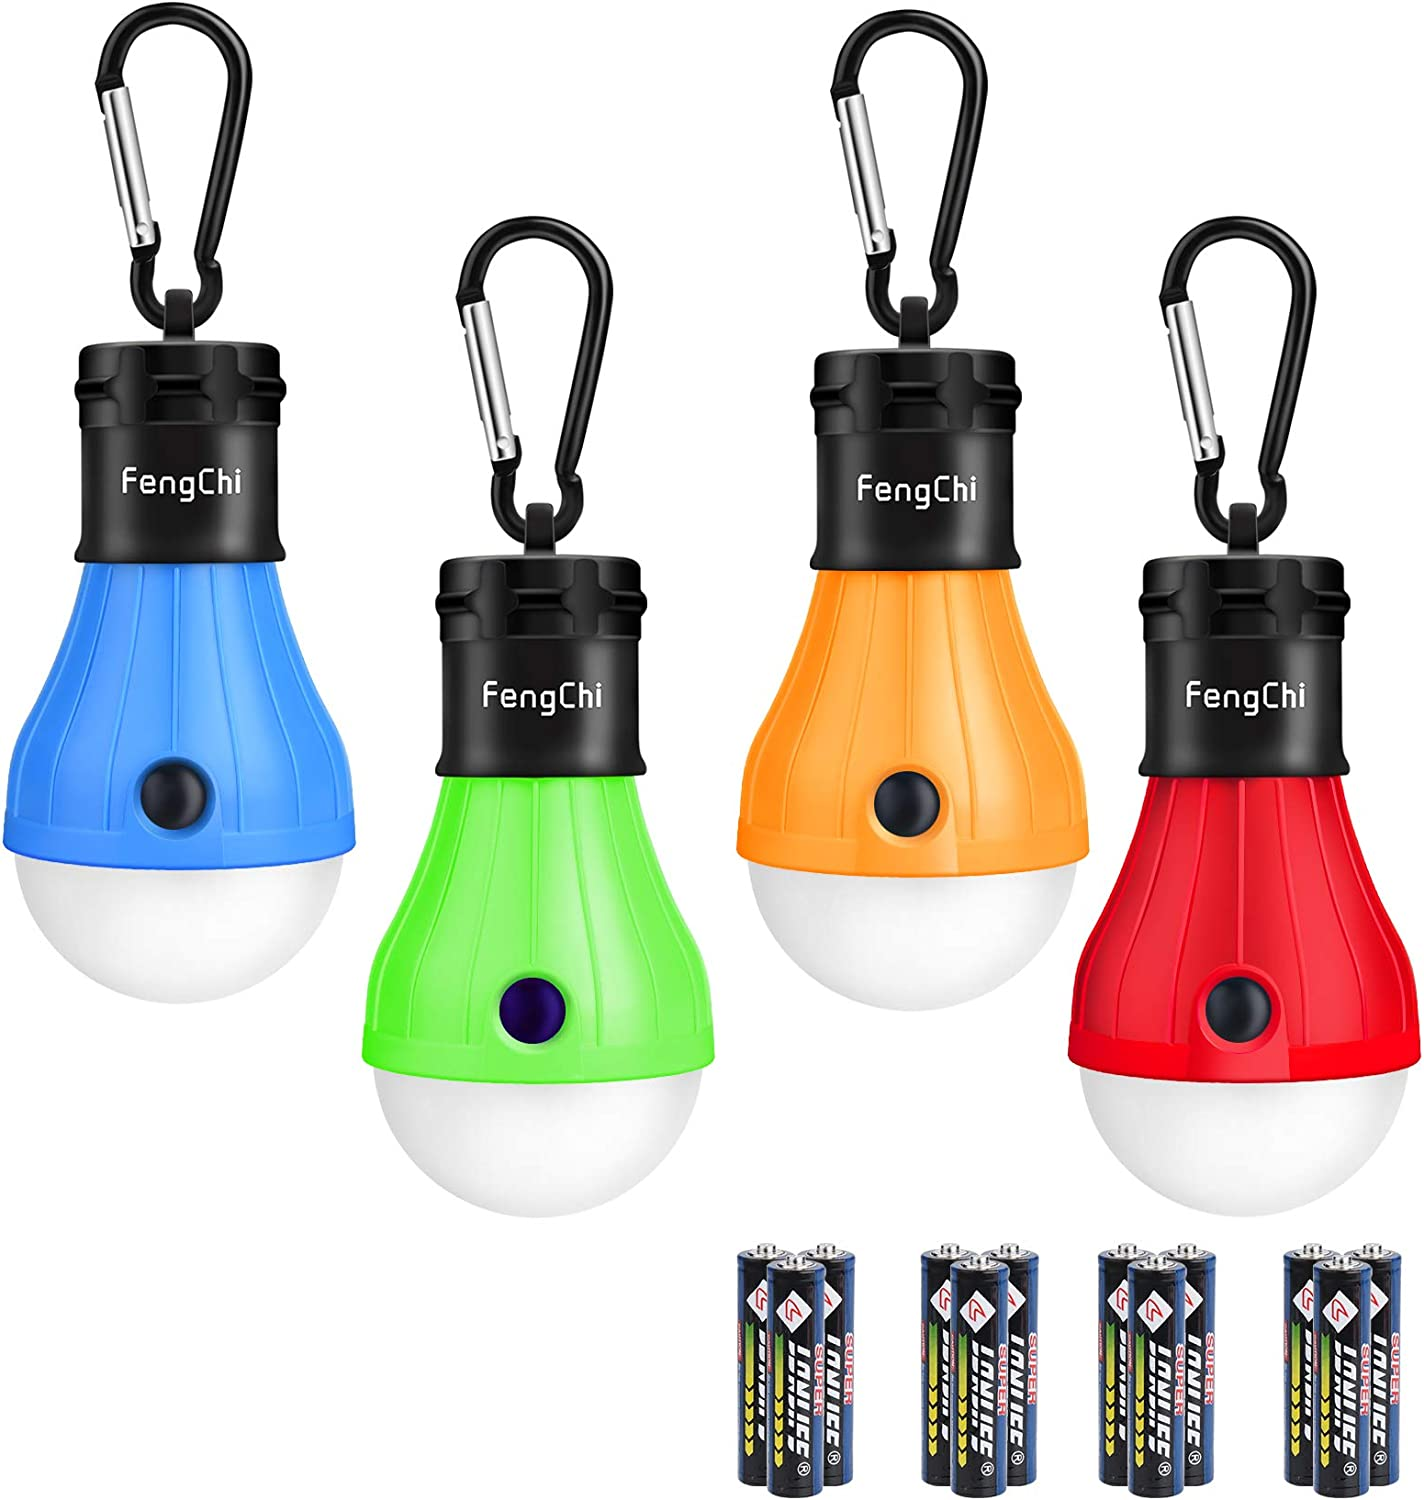 FengChi LED Industry Popular No. 1 Camping Lantern 4 Outdoor Pack Tent Ligh Portable